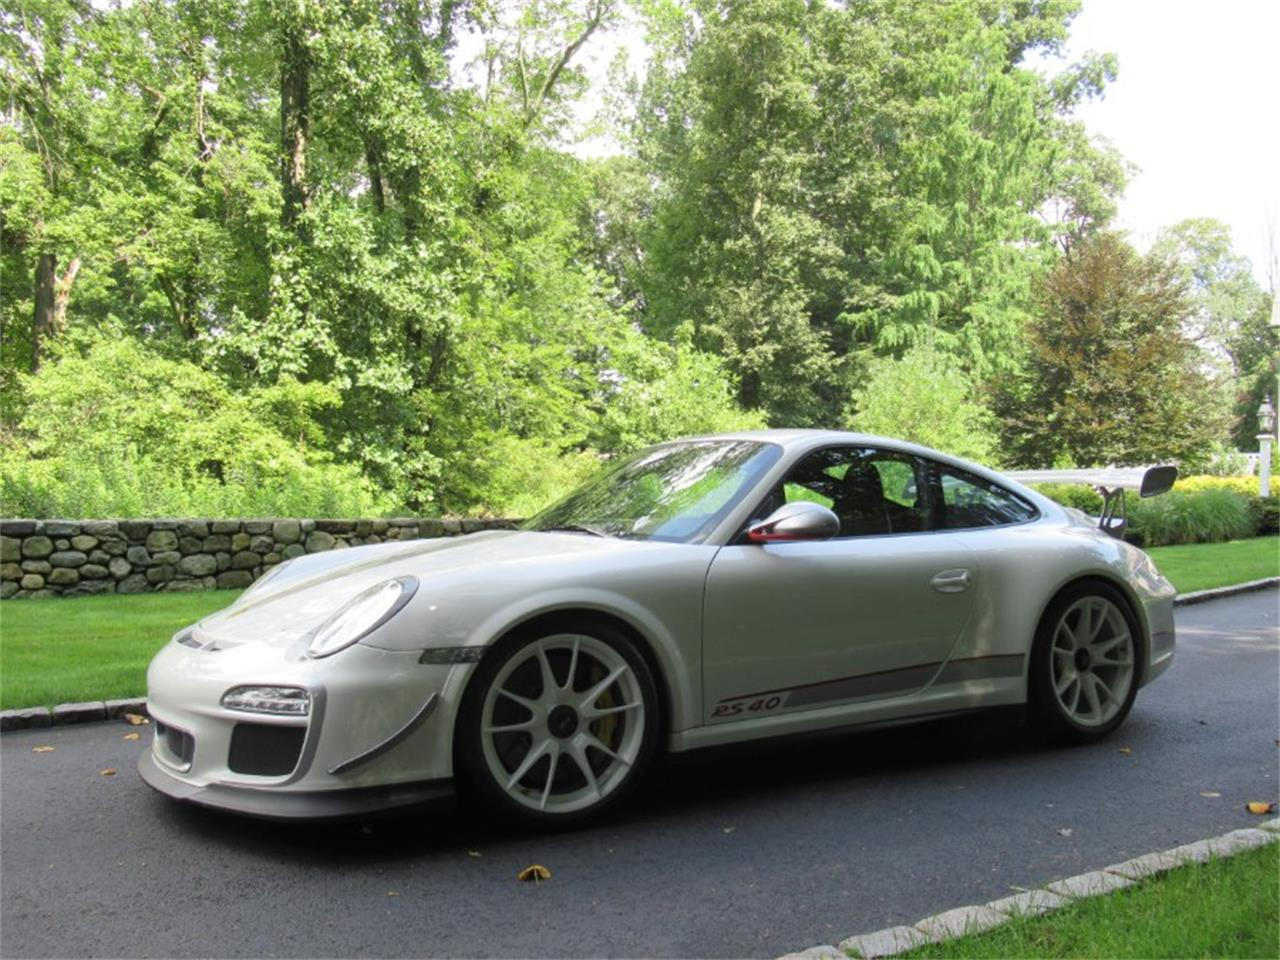 2011 Porsche 911 GT3 RS 4.0 (CC-1188083) for sale in Milford, Connecticut